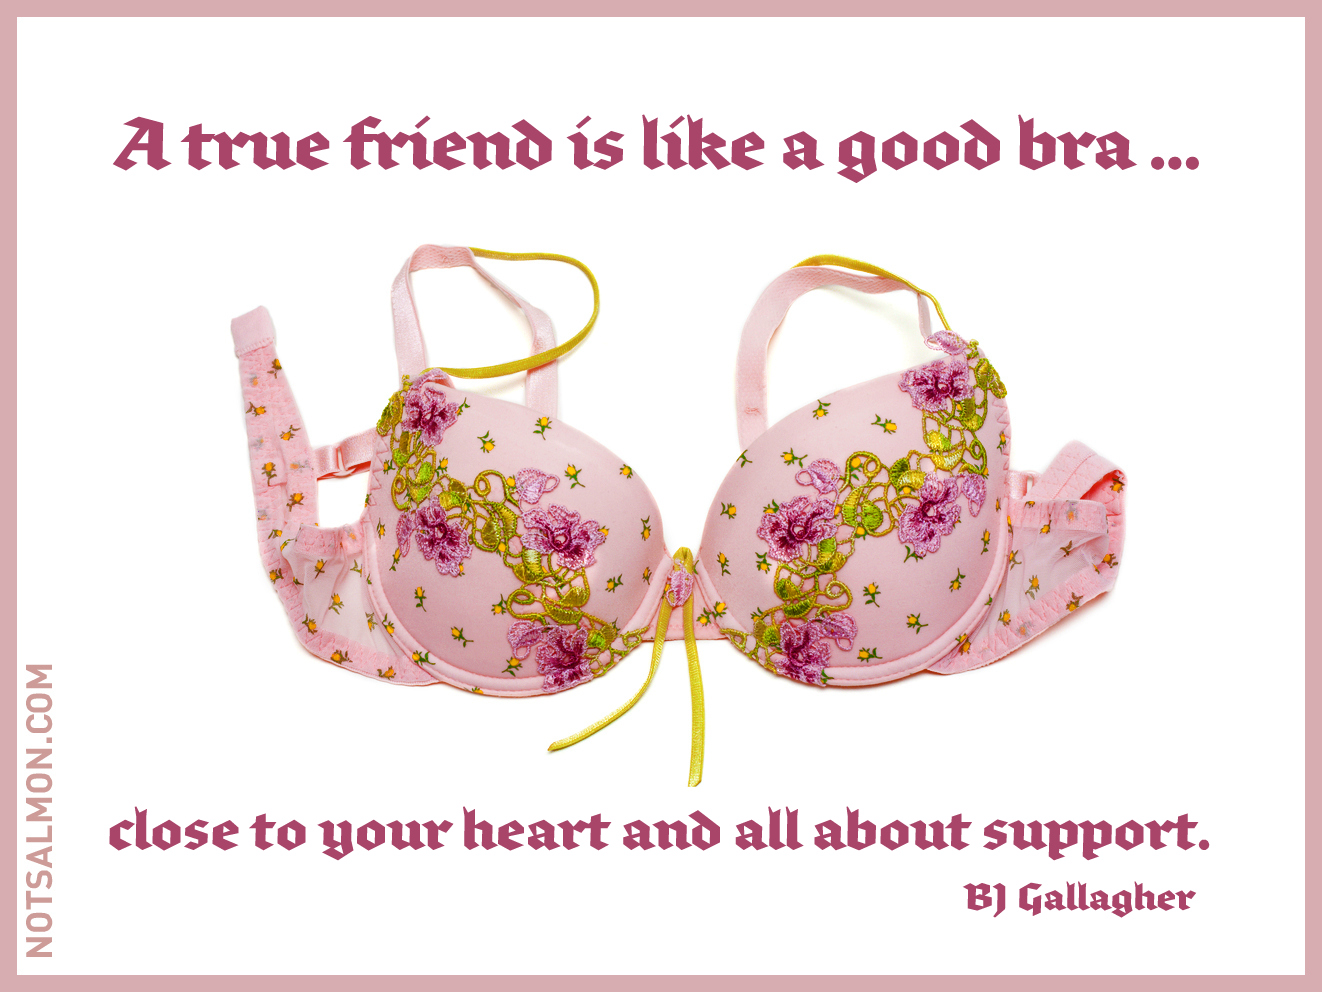 A true friend is like a good bra close to your heart Qualities of a good architect